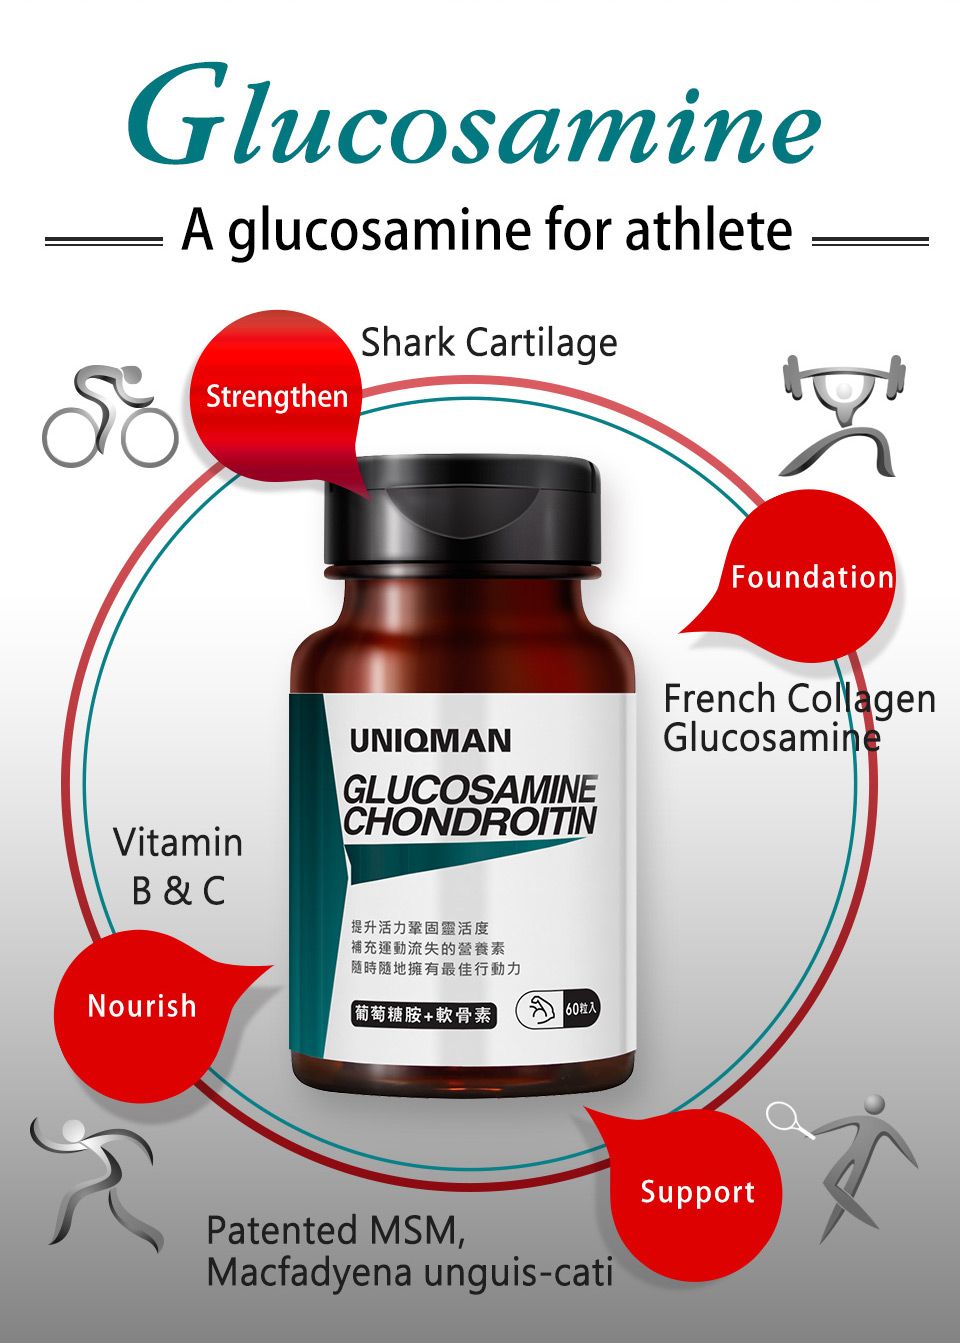 UNIQMAN Glucosamine + Chondroitin contains patented MSM that can reduce joint pain